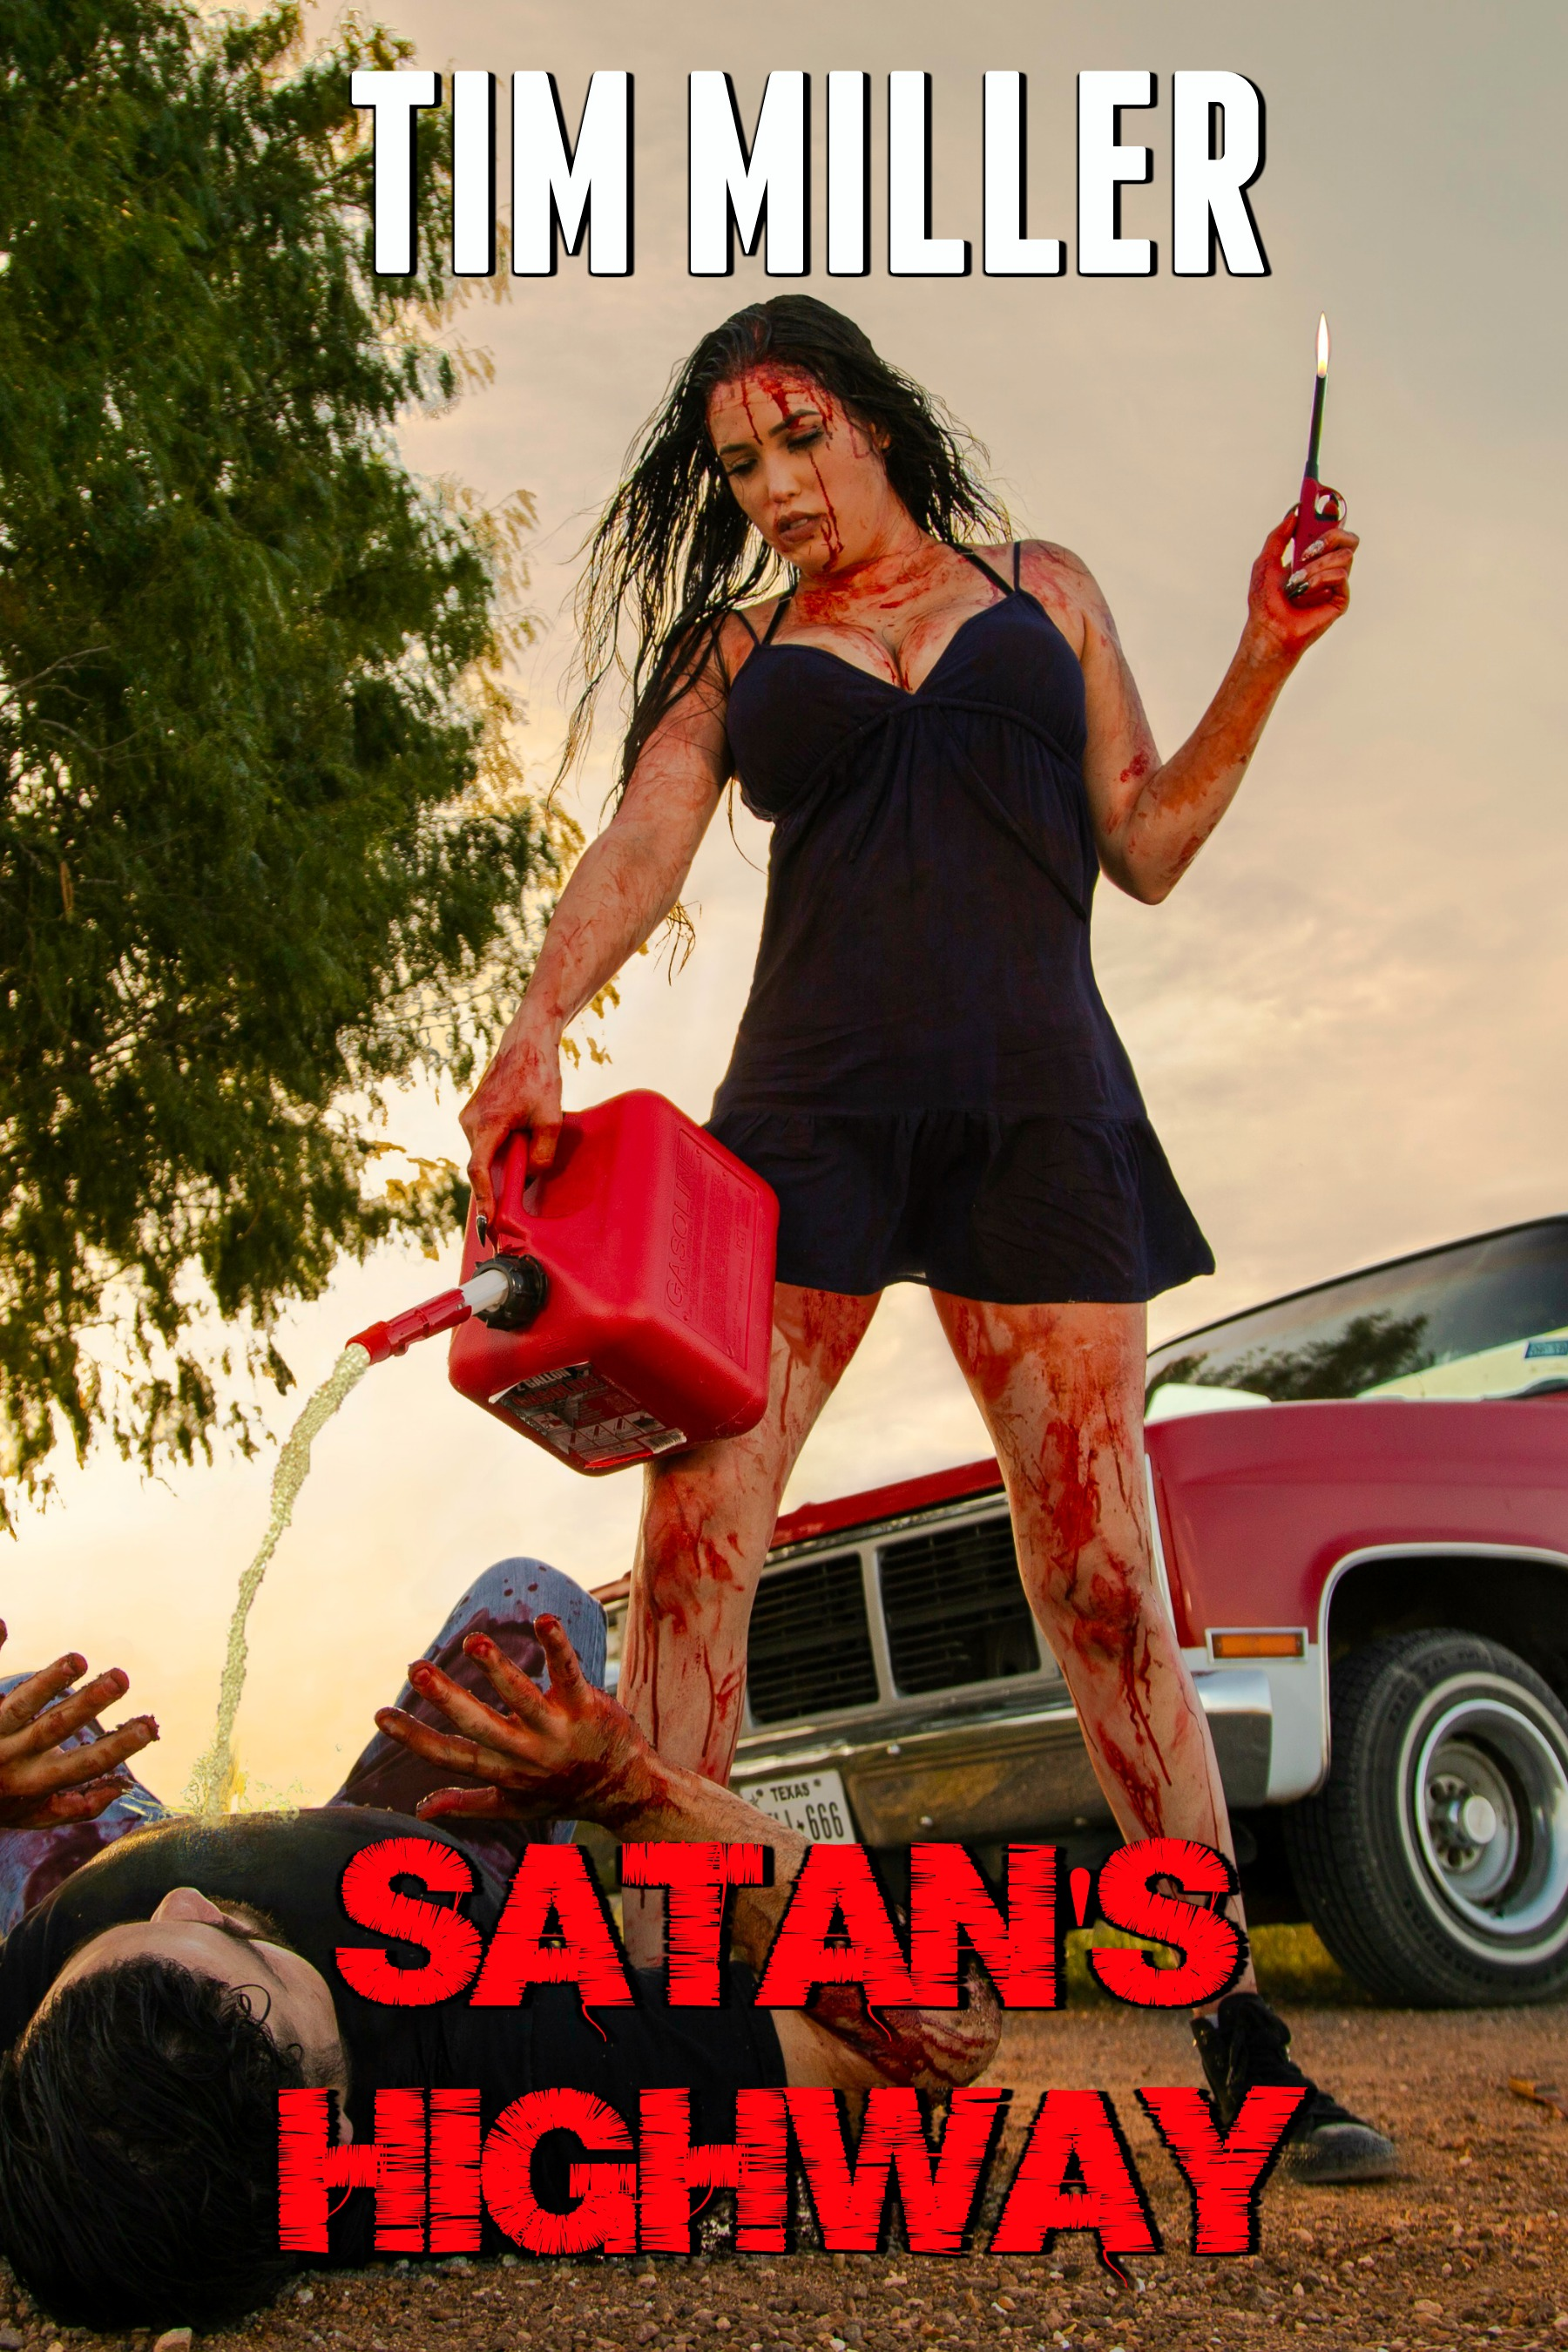 The book cover for Satan's Highway.